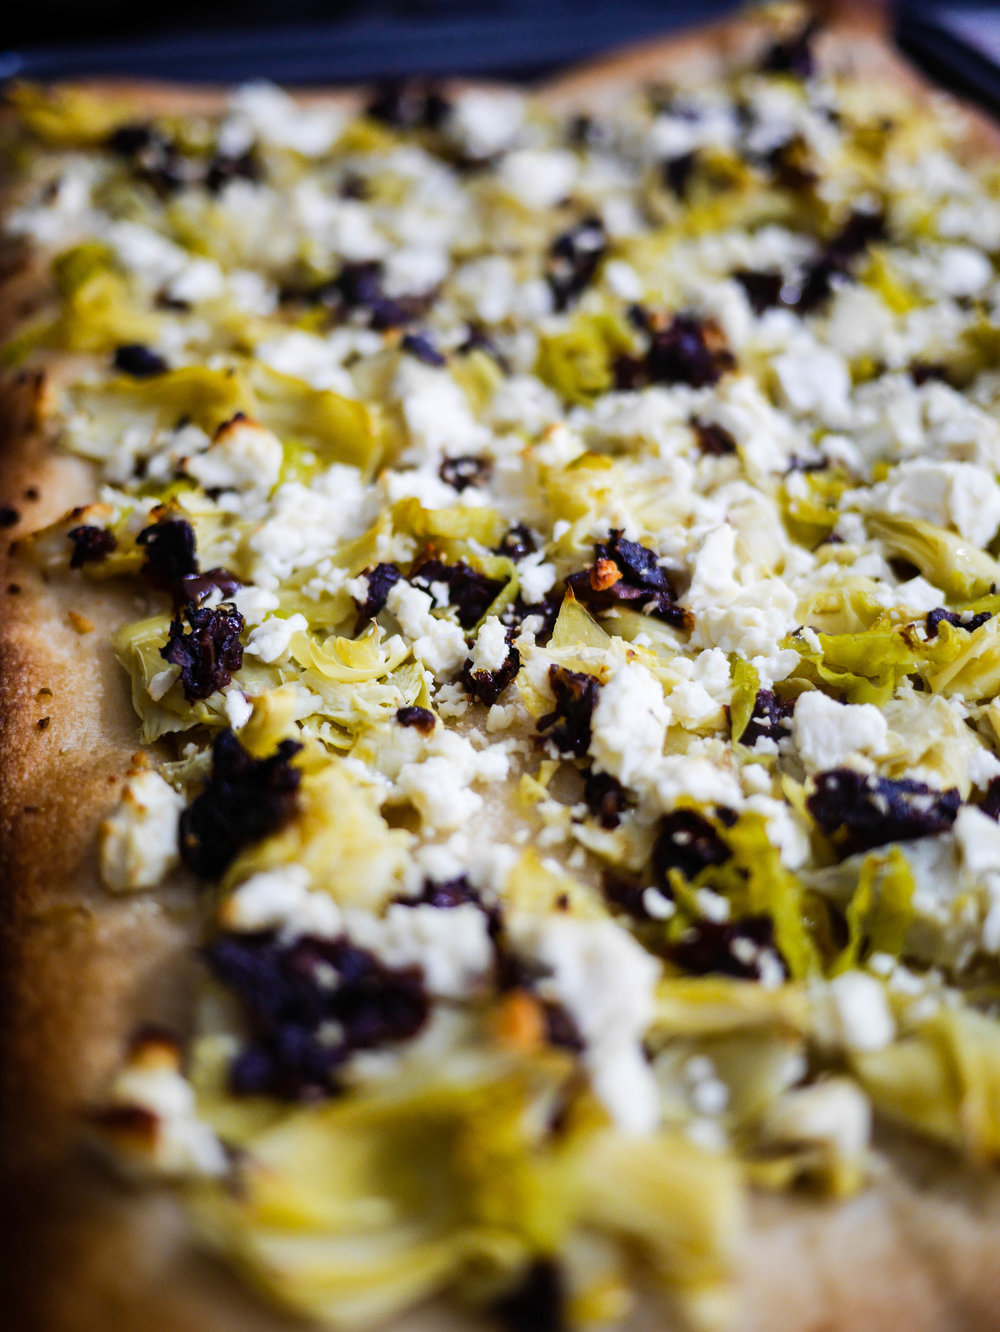 Artichokes, pepperochinis and sun-dried tomatoes make this the perfect pizza for a Meatless Monday!